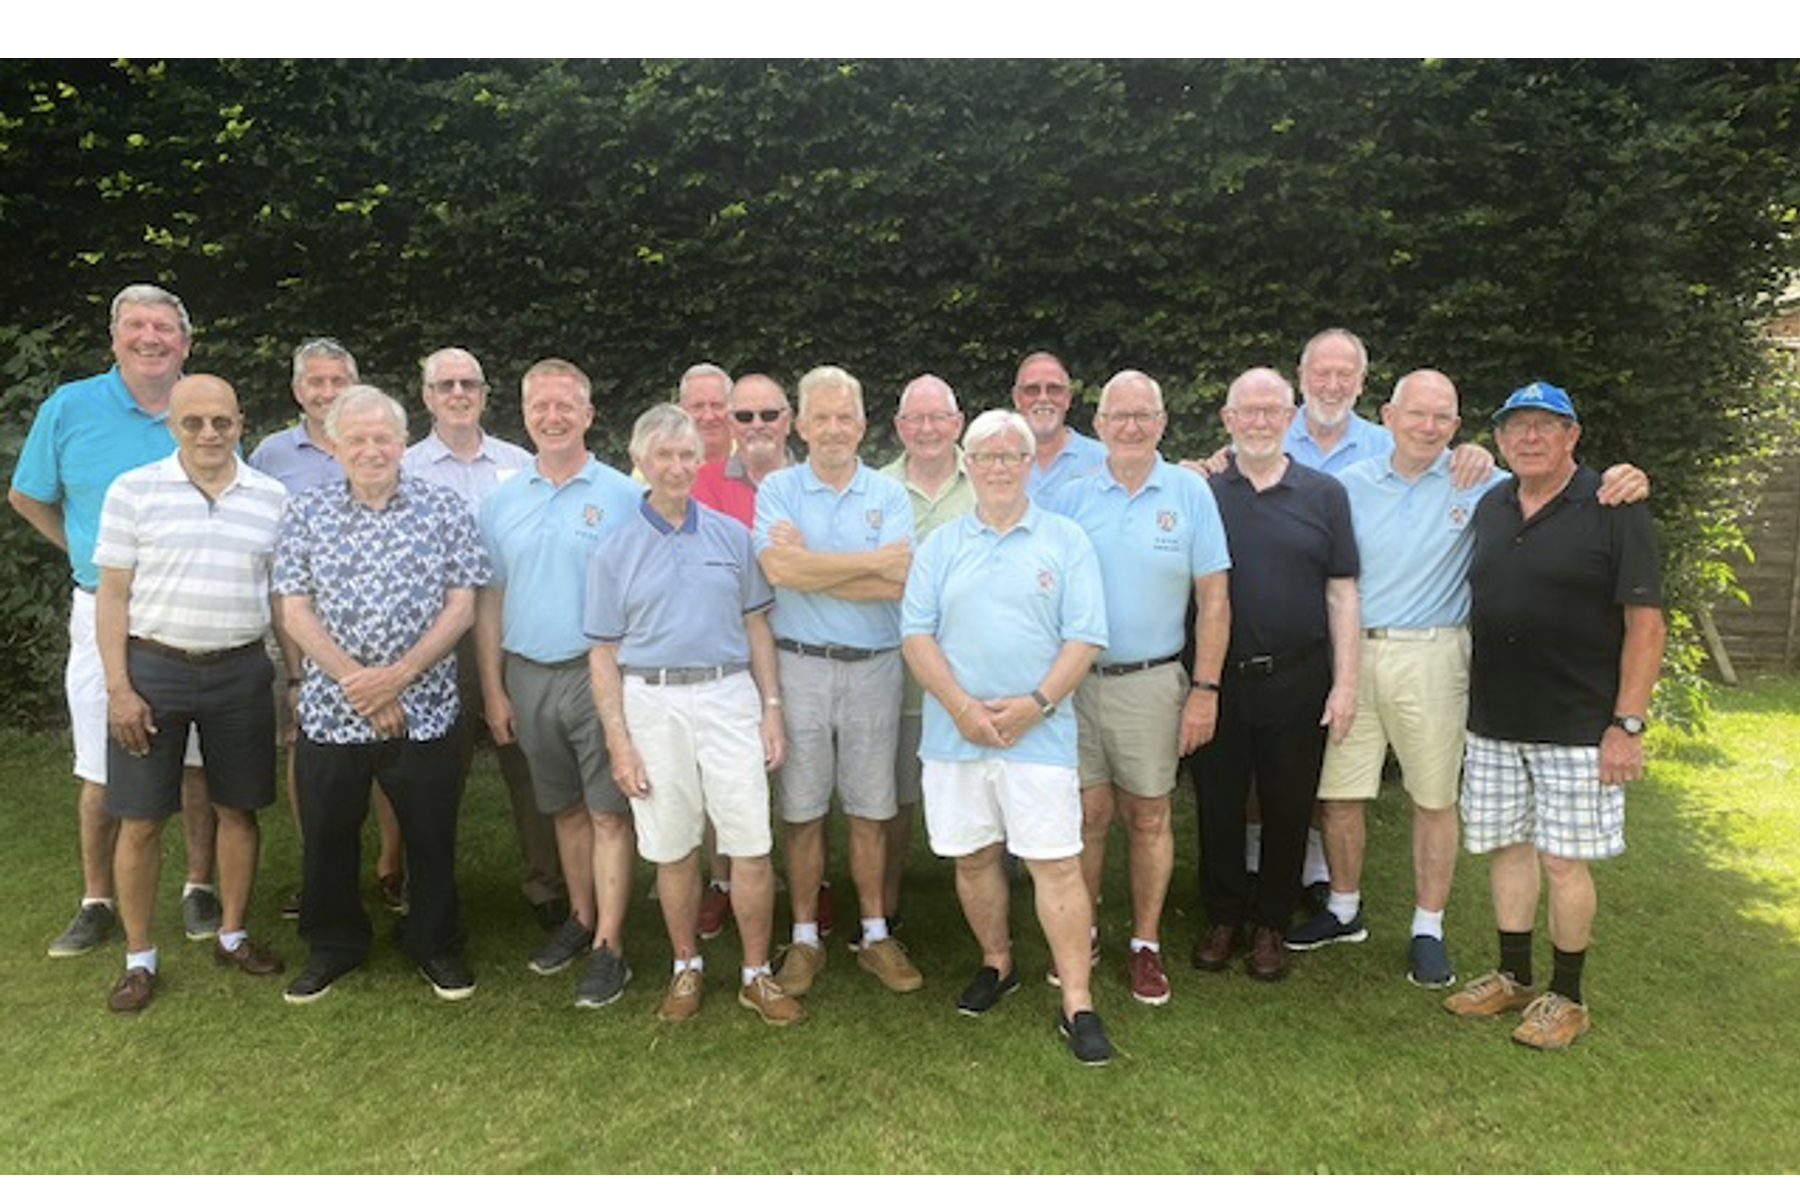 Bedfordshire Golfers Swelter in 90 Degree Heat